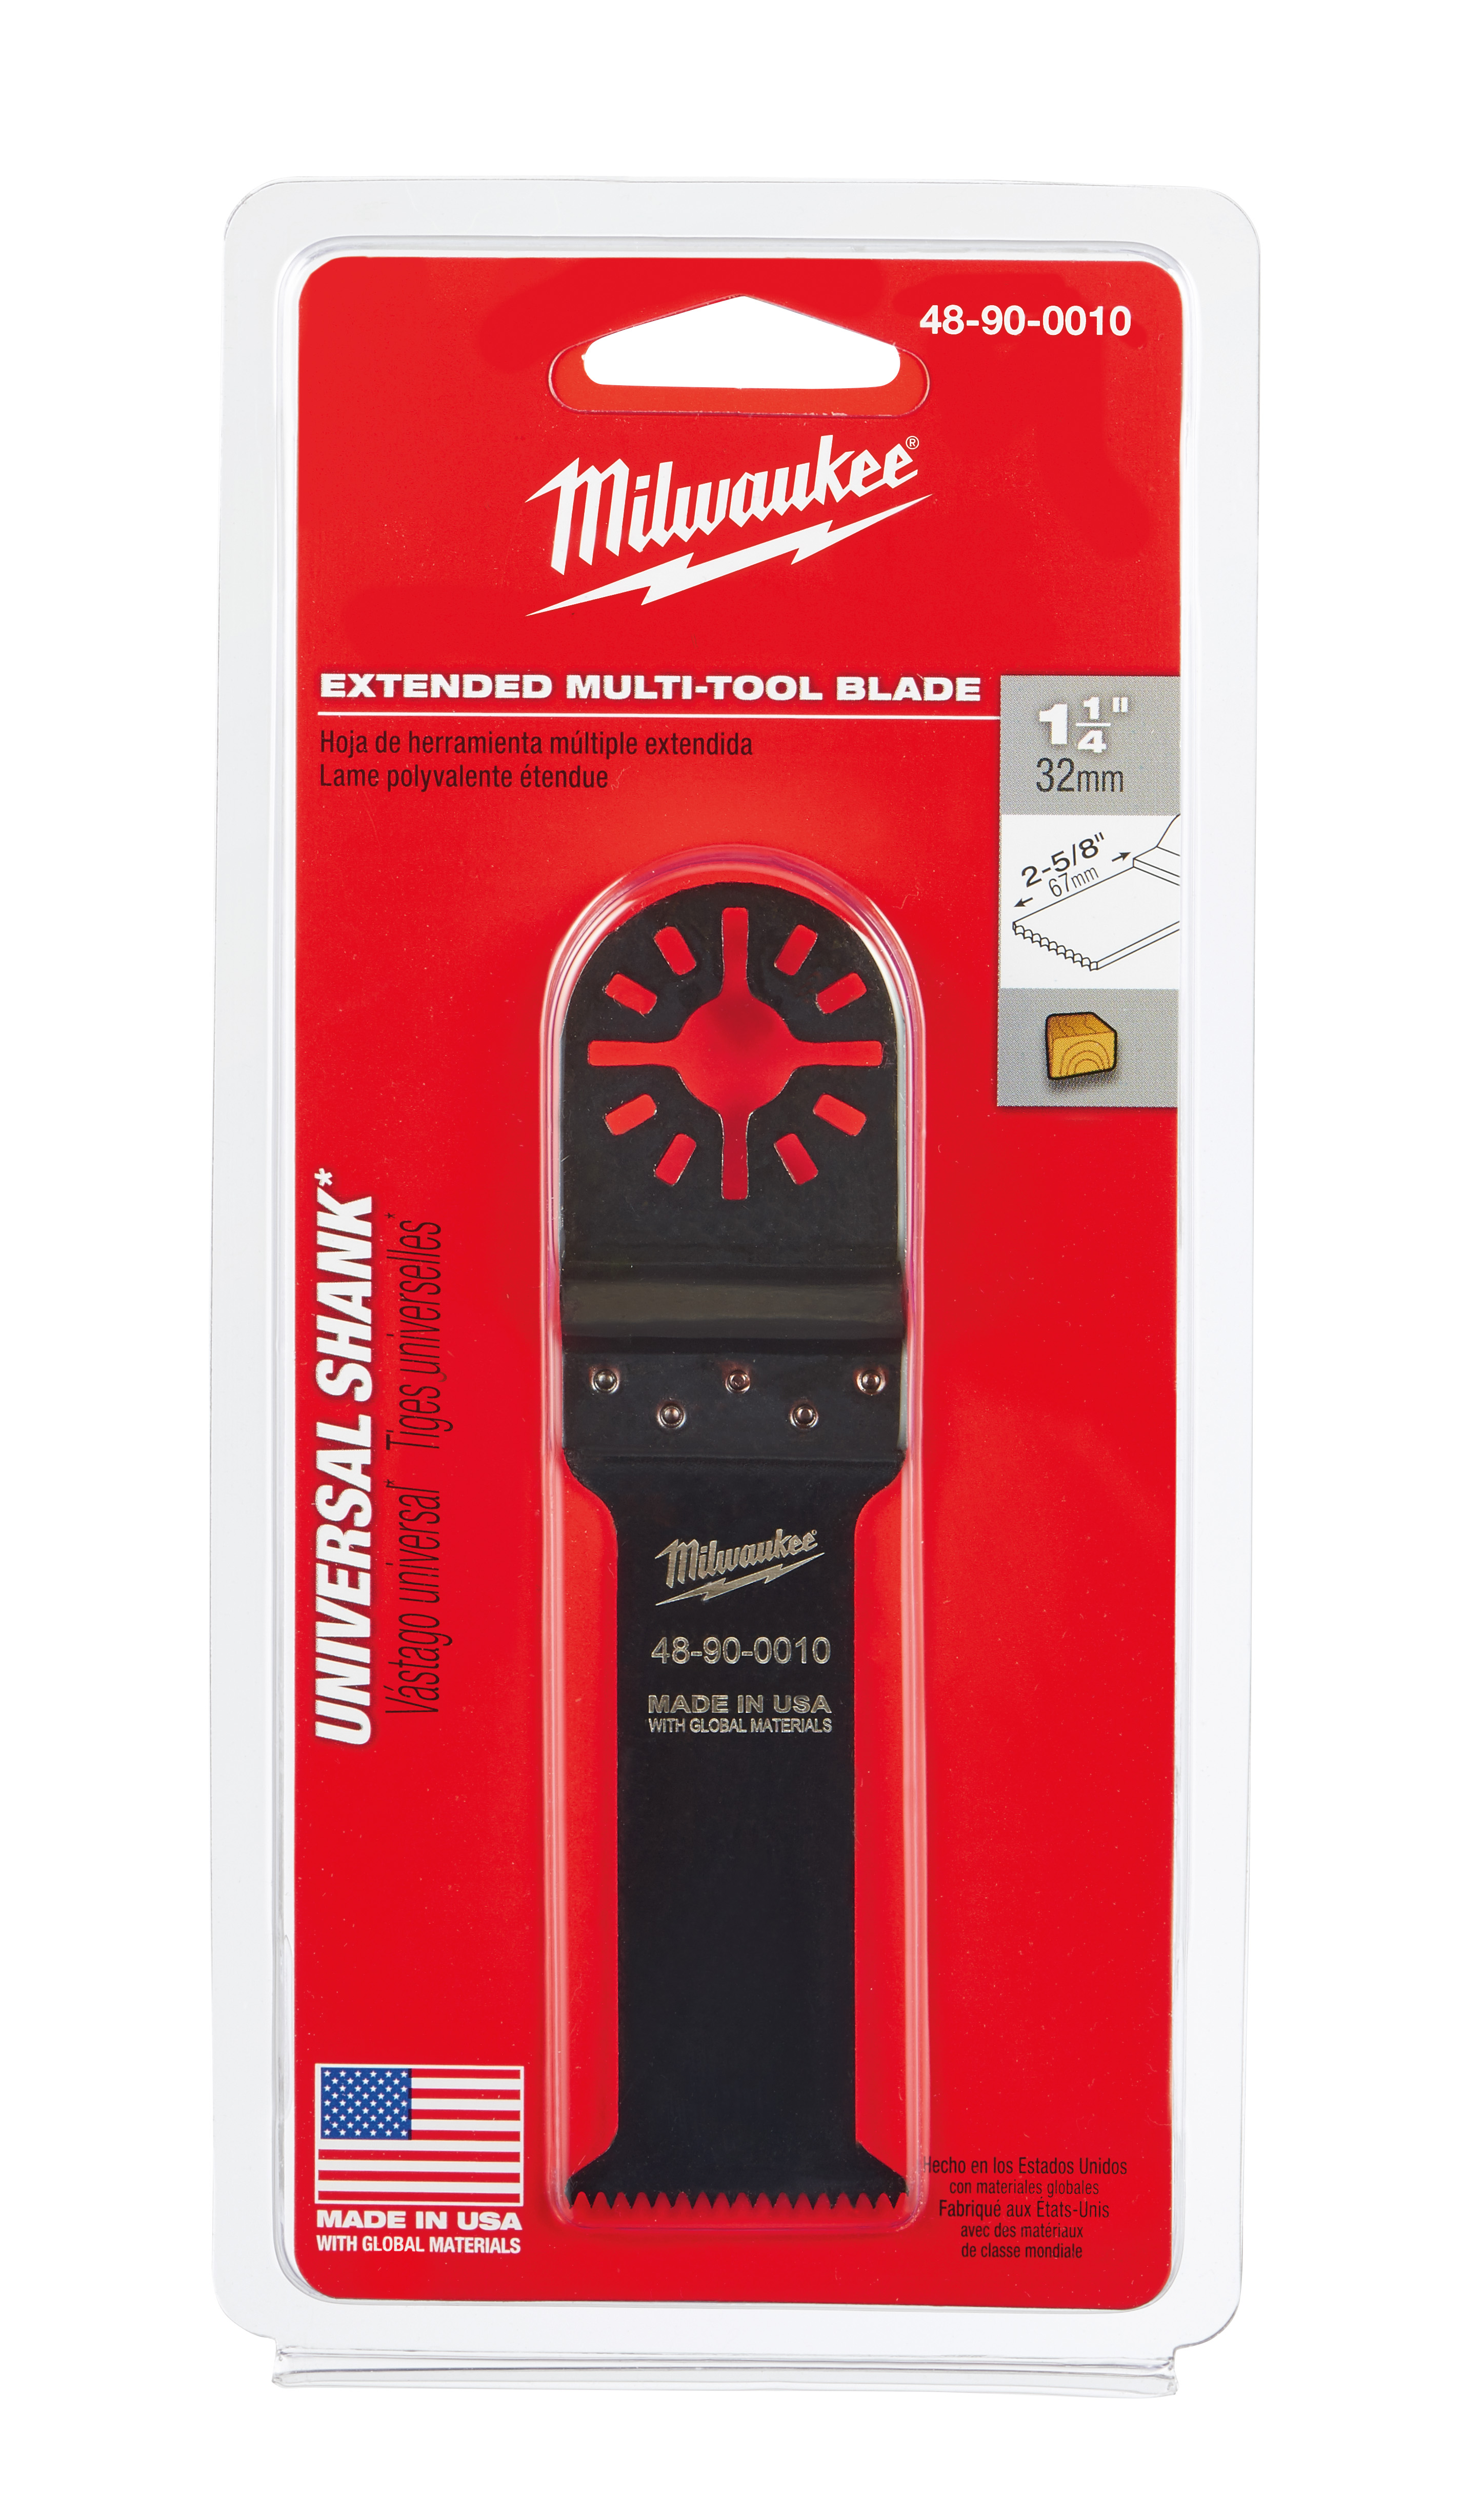 Milwaukee® 48-90-0010 Multi-Tool Blade, For Use With Oscillating Tool, 1-1/4 in Dia Cutting, High Carbon Steel